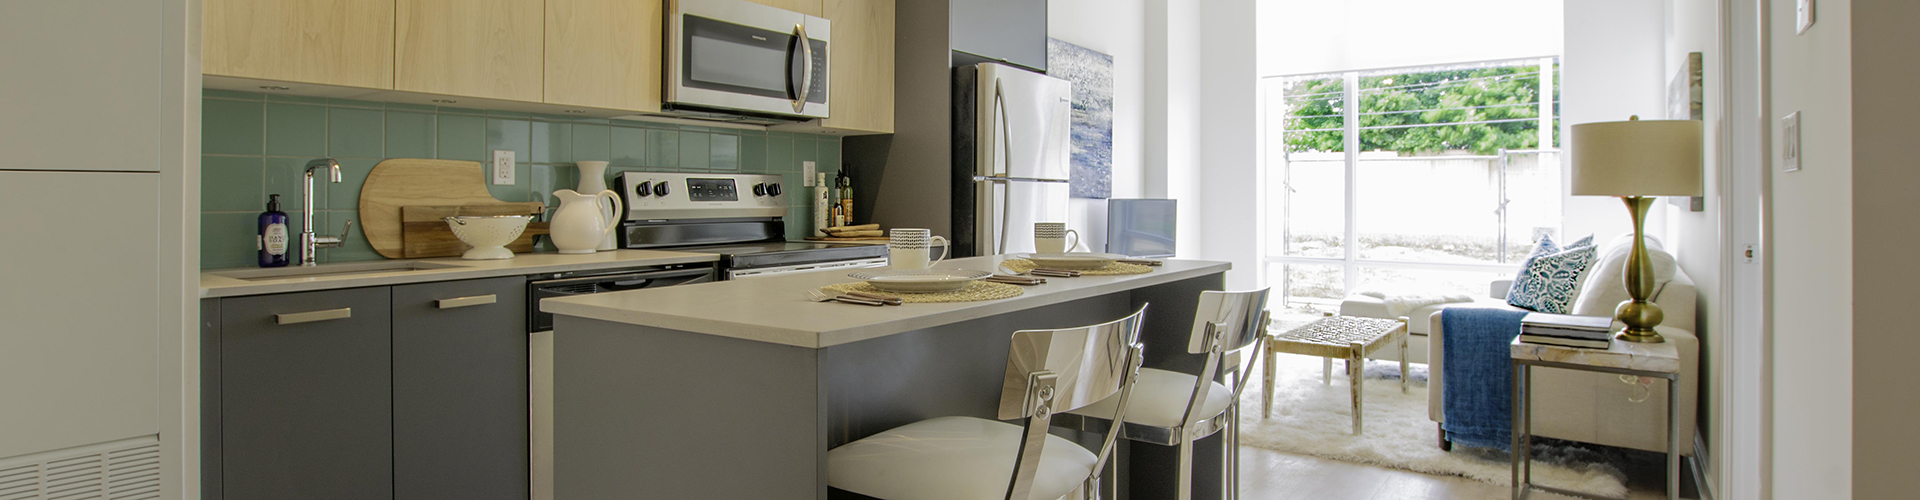 Open Kitchen at Marlborough Court Apartments in Toronto. Rent with Minto Apartments.